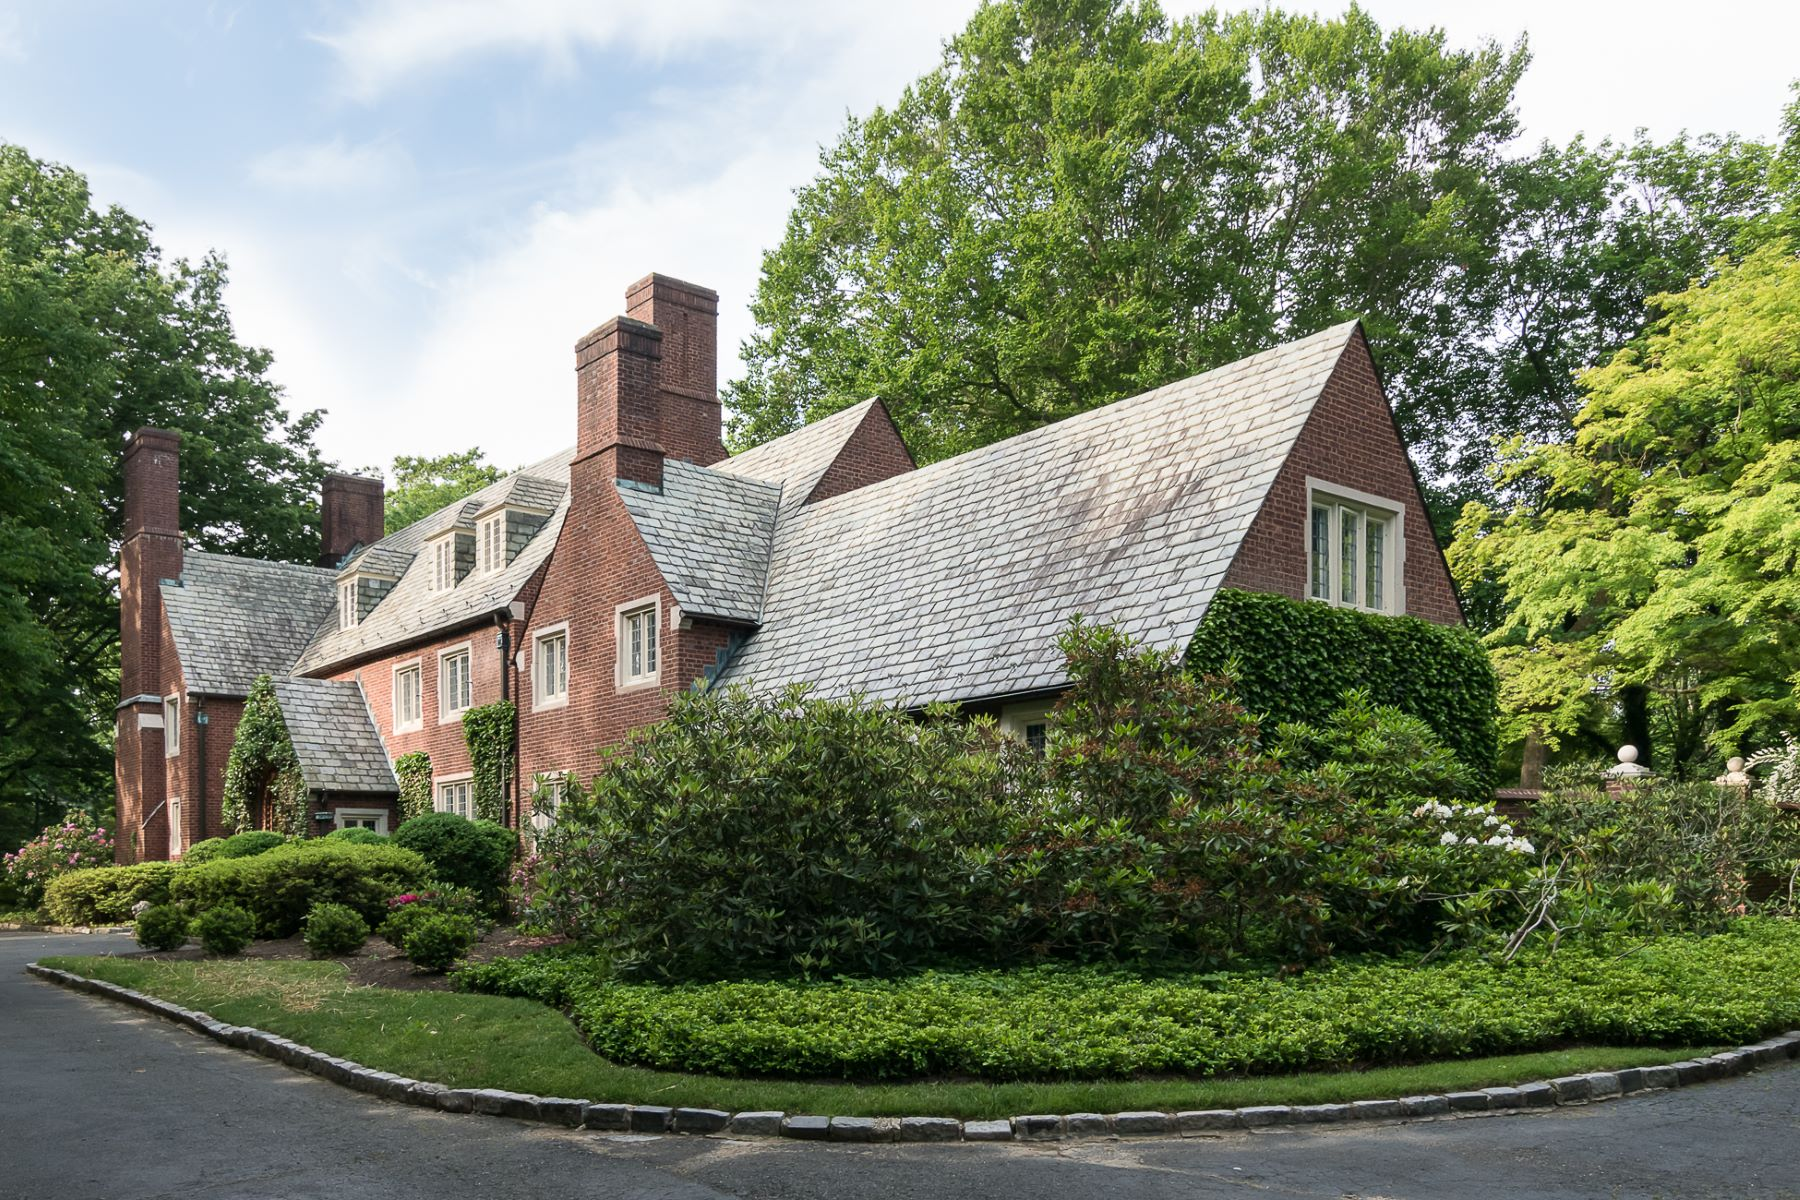 Property for Sale at English Manor Elevated To Meet Modern Expectations 94 Rosedale Road, Princeton, New Jersey 08540 United States